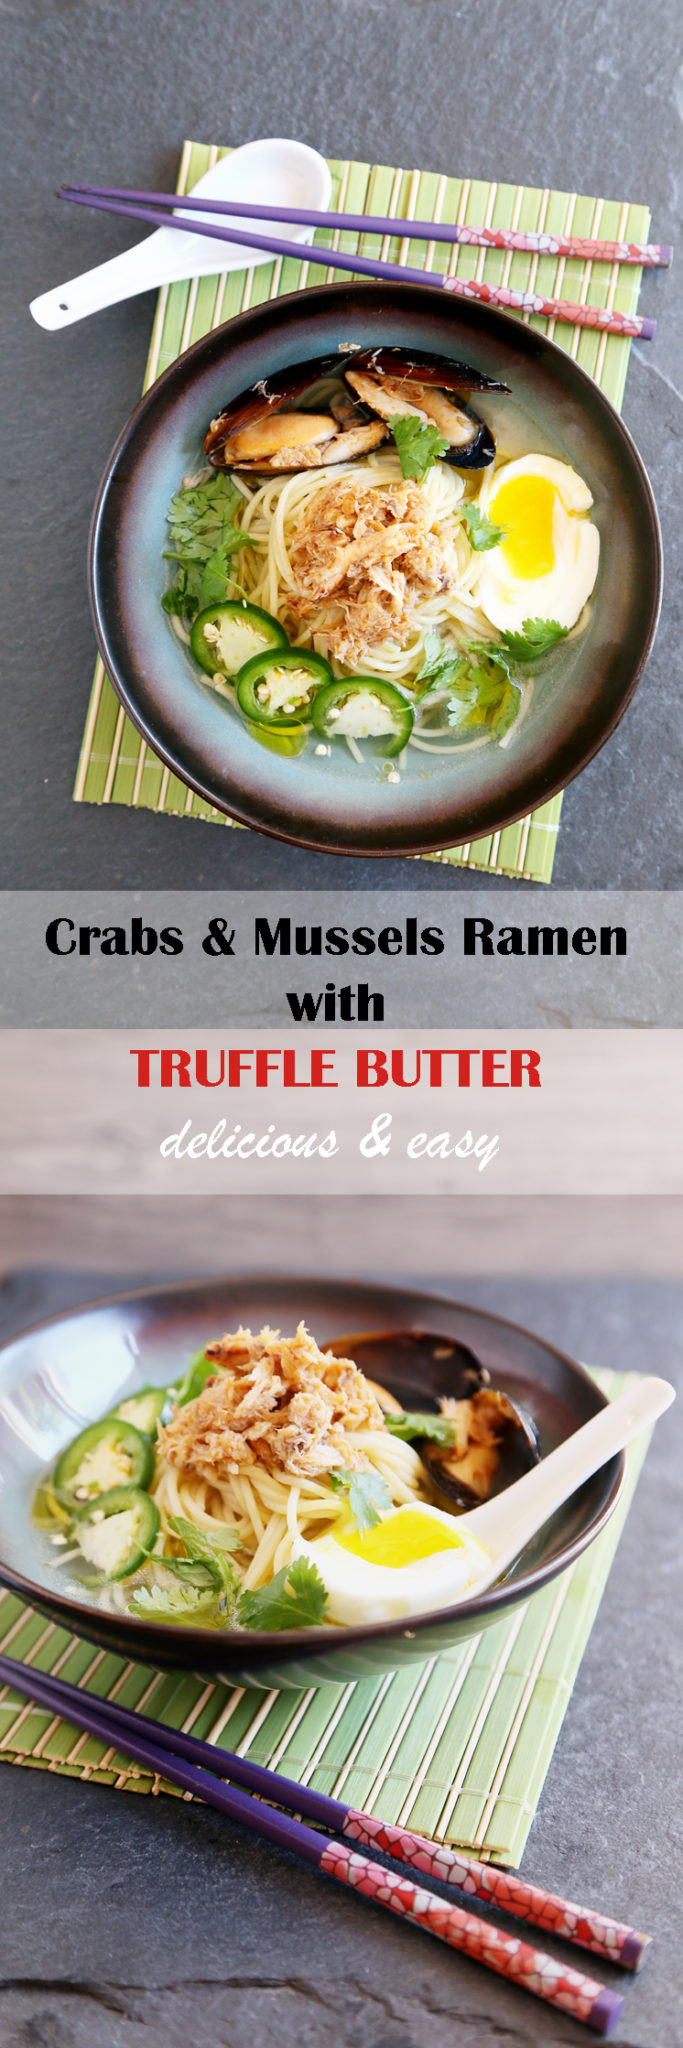 Delicious and easy crabs and mussels ramen with truffle butter